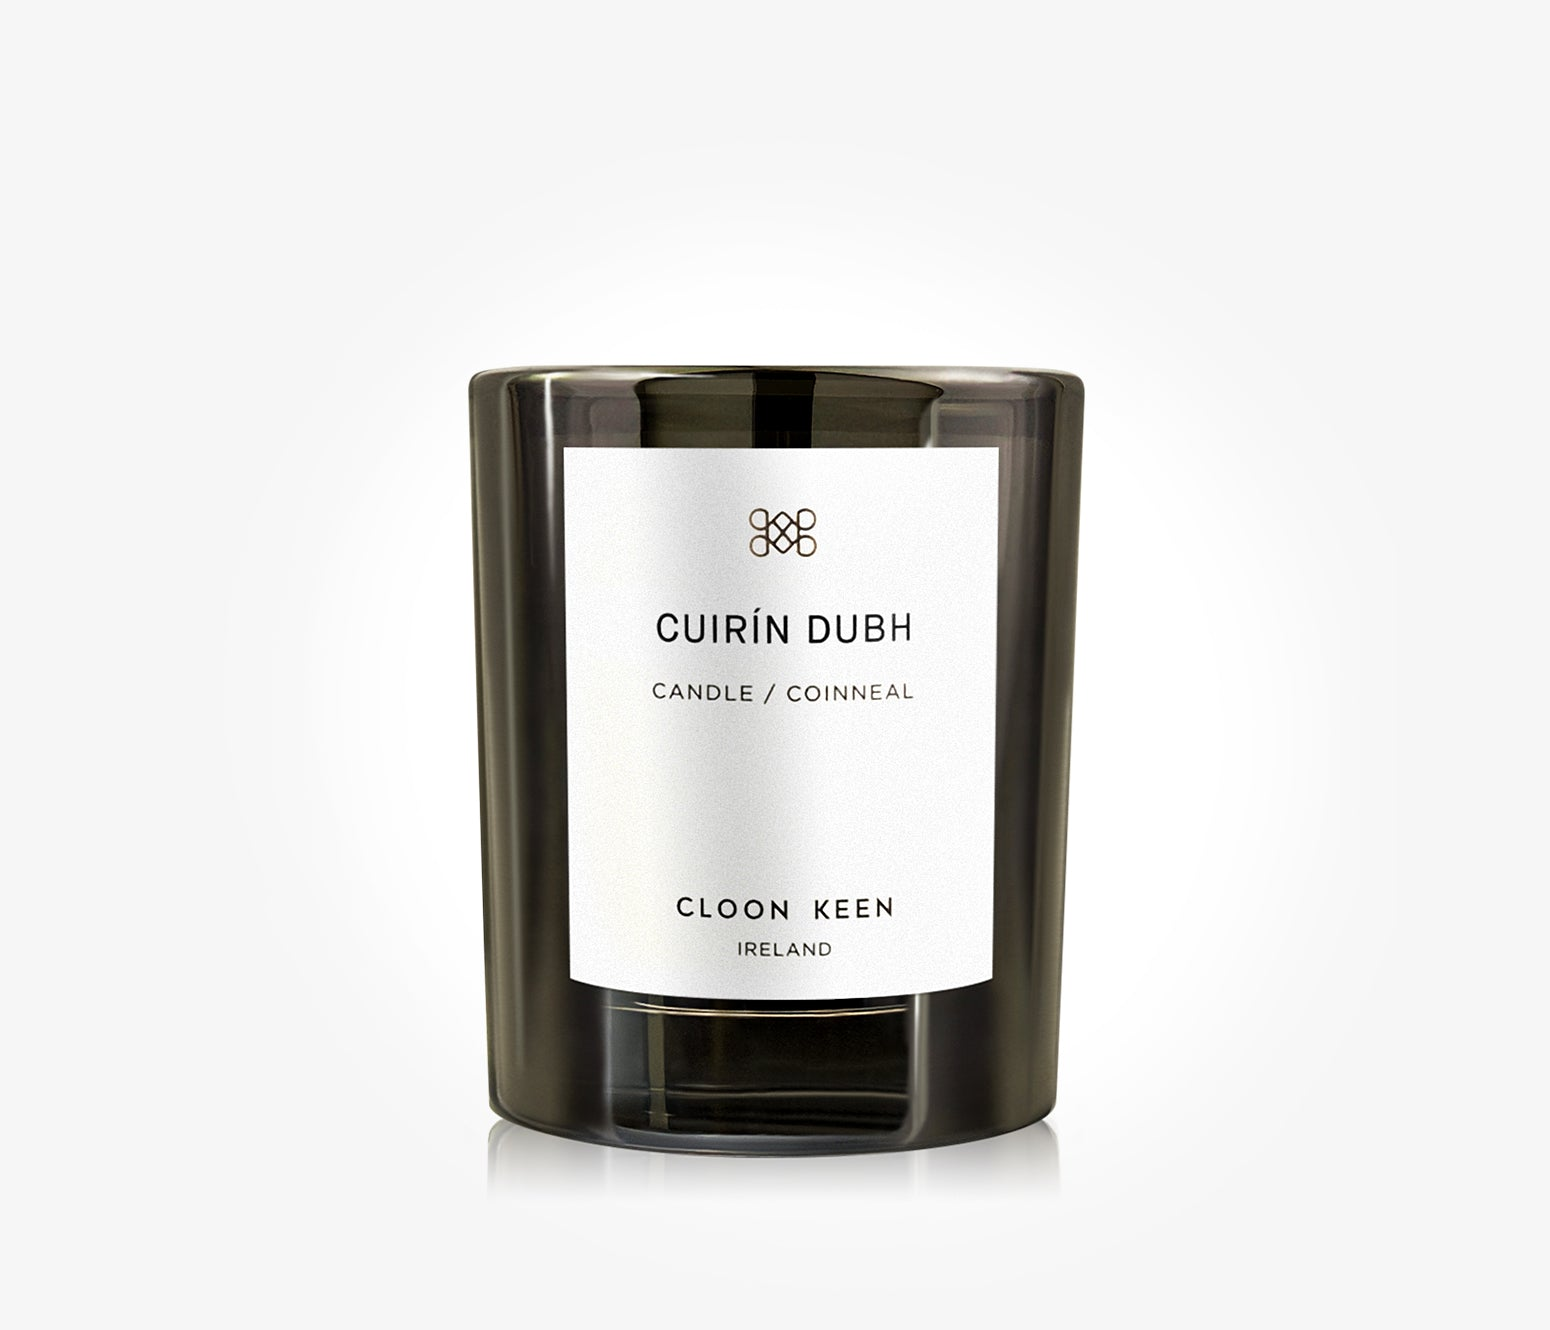 Cloon Keen - Cuirin Dubh Candle - 280g - SHQ001 - product image - Candle - Les Senteurs